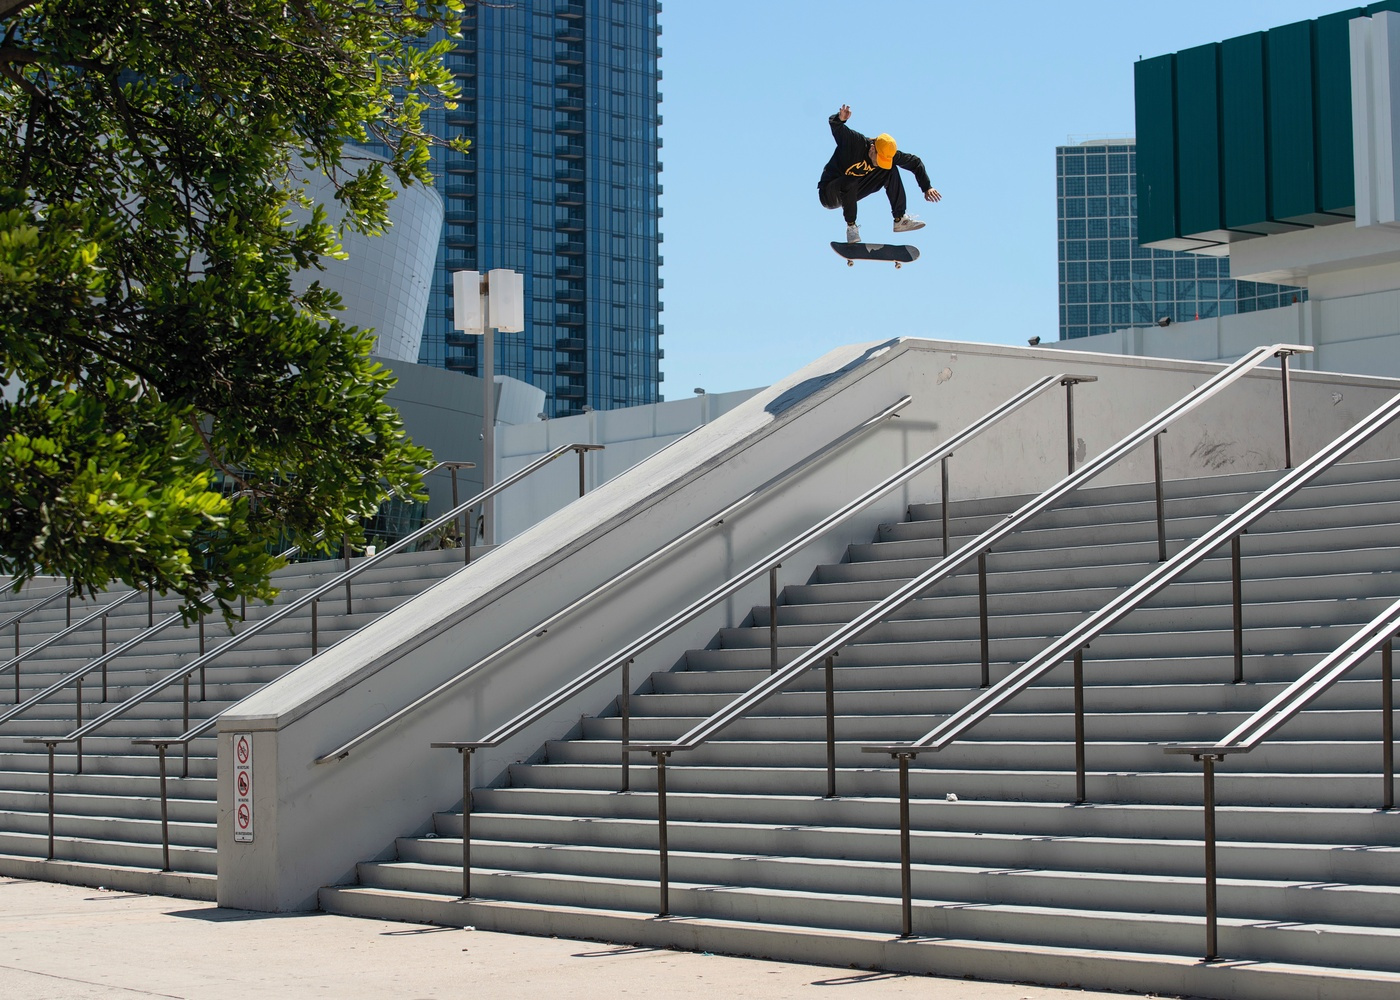 Sam Perales / / Fakie Flip by Will Fisher